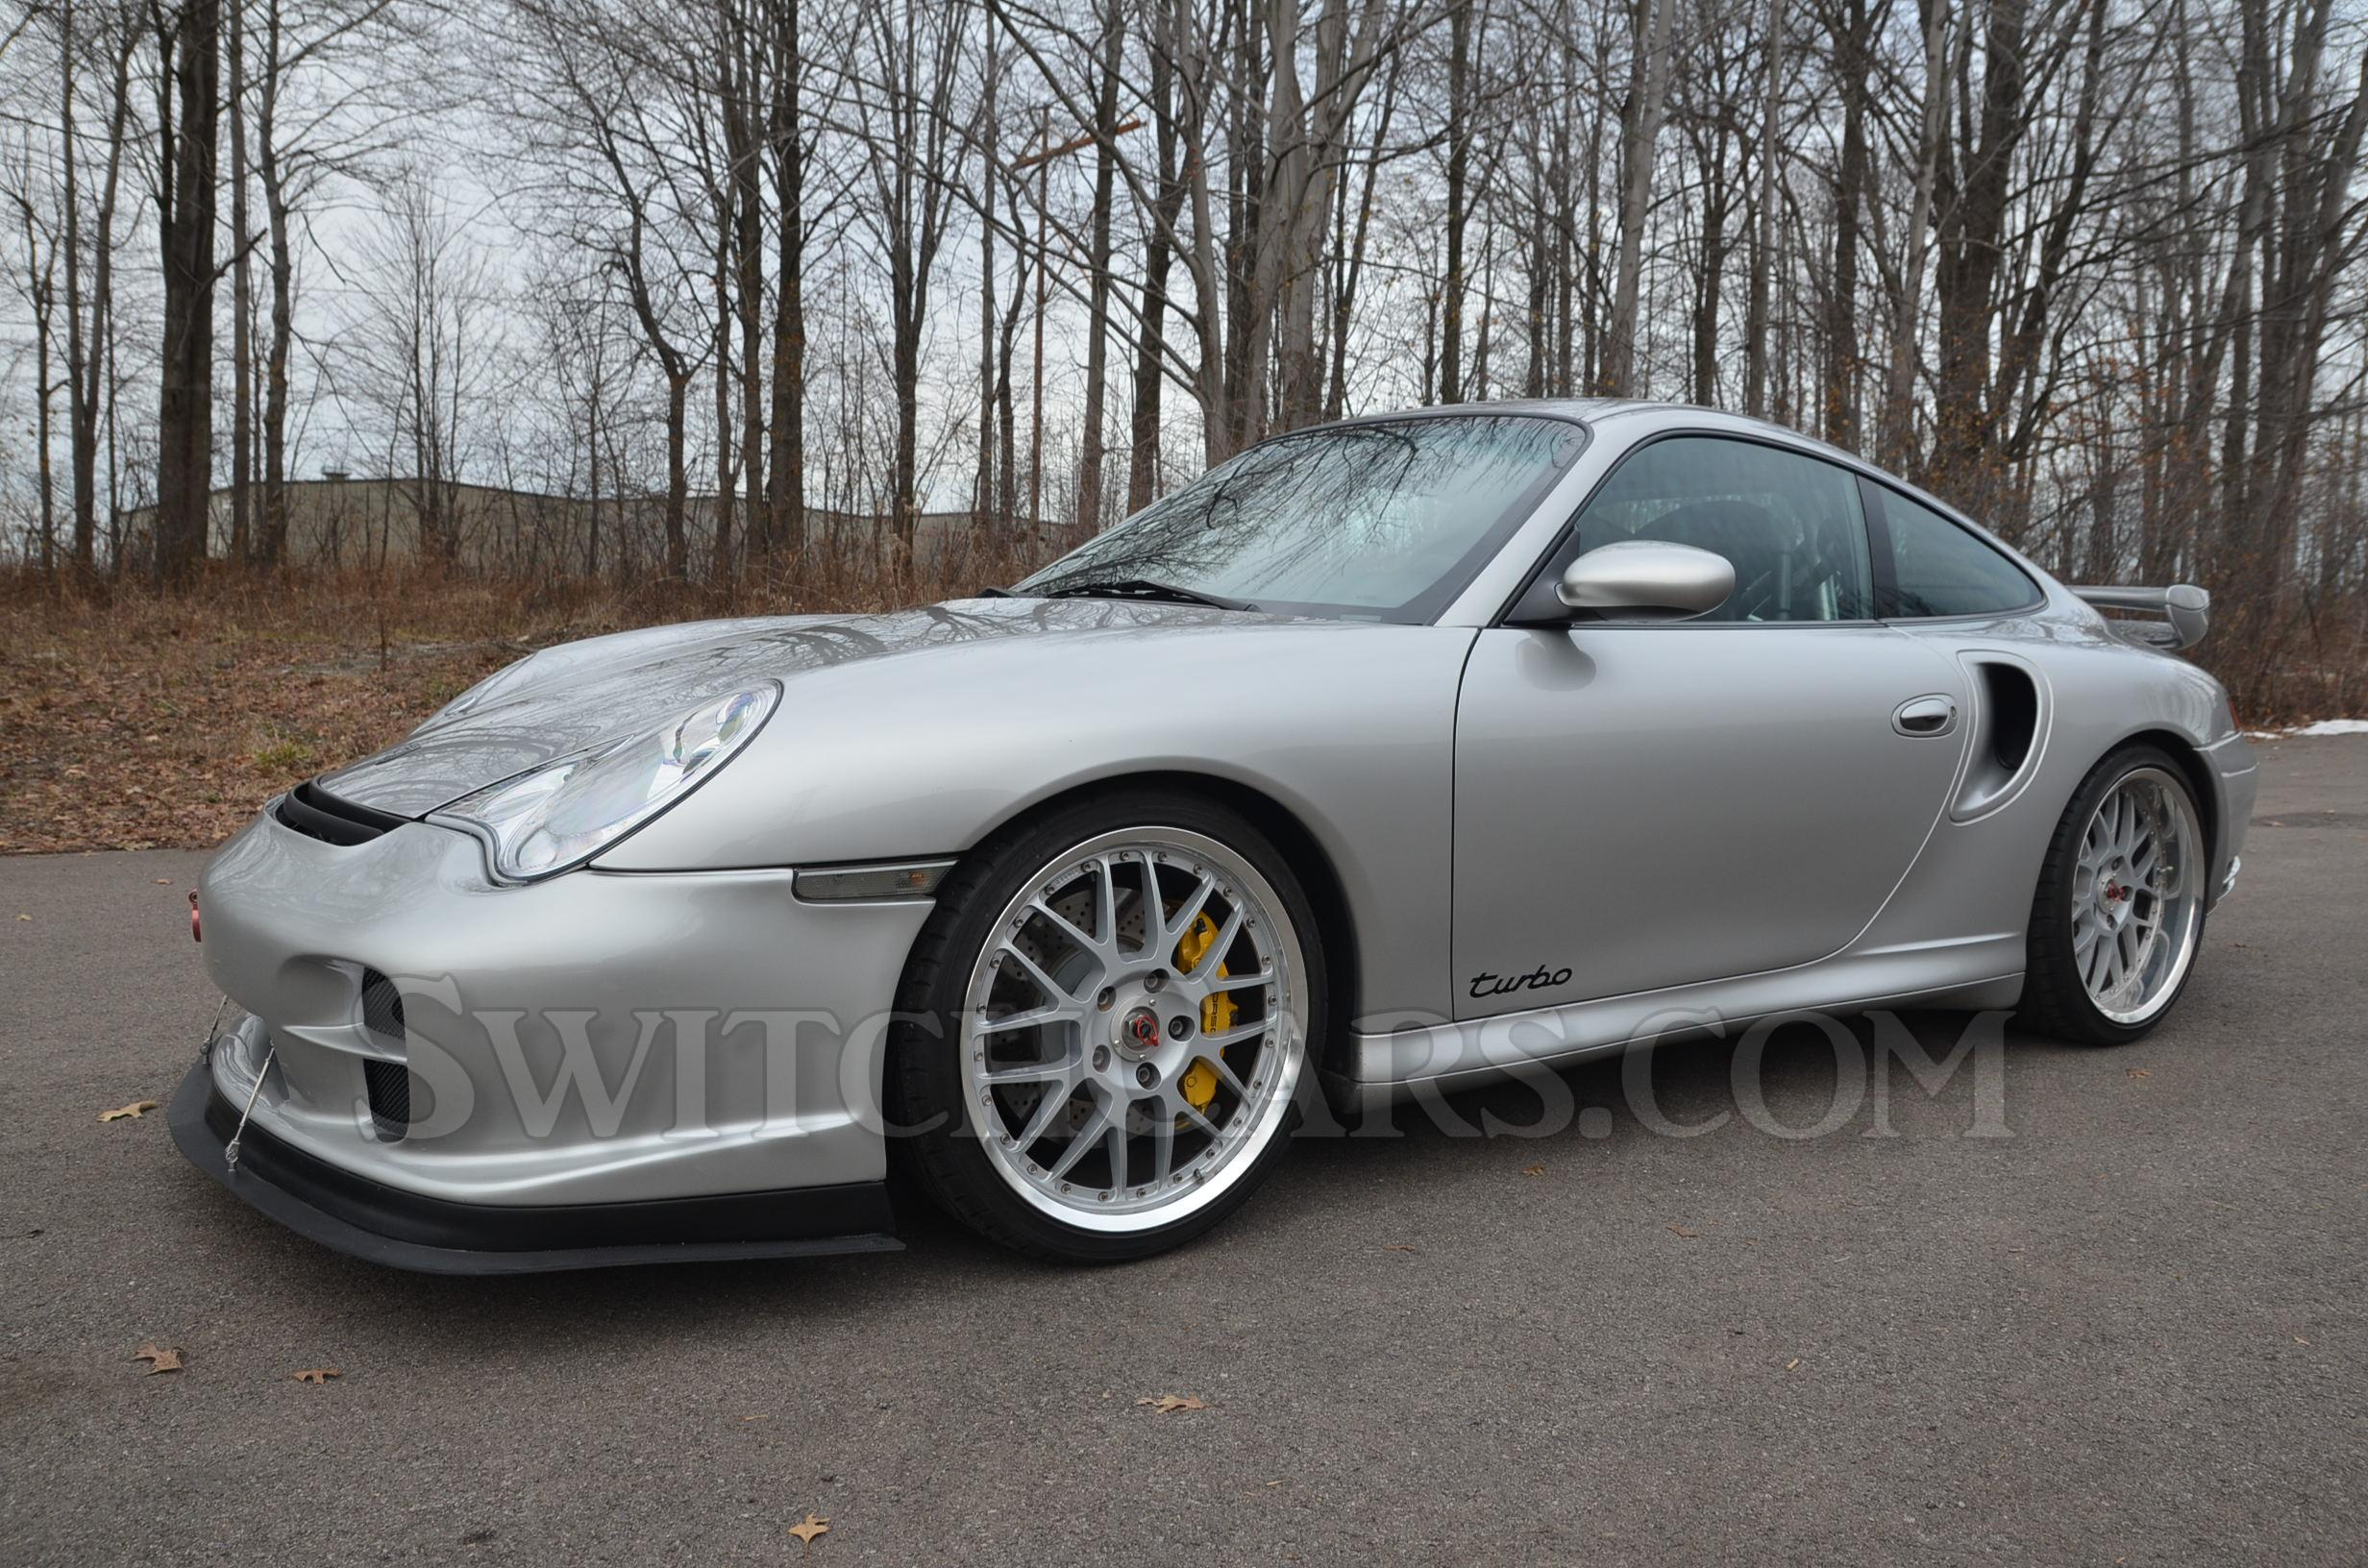 2003 porsche 911 turbo x50 aerokit at switchcars inc sold. Black Bedroom Furniture Sets. Home Design Ideas